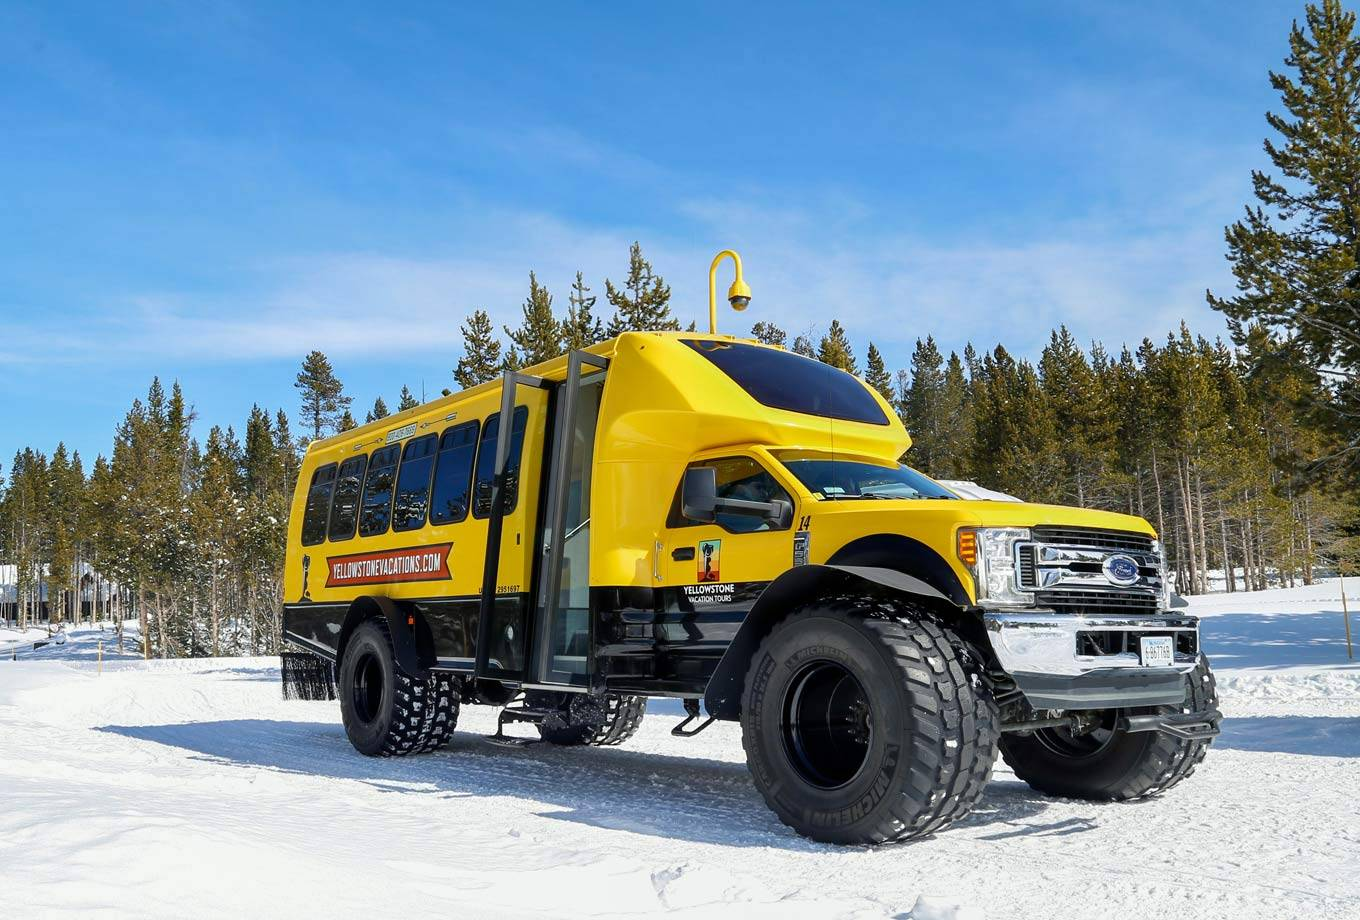 Yellowstone National Park Snowcoach Tours